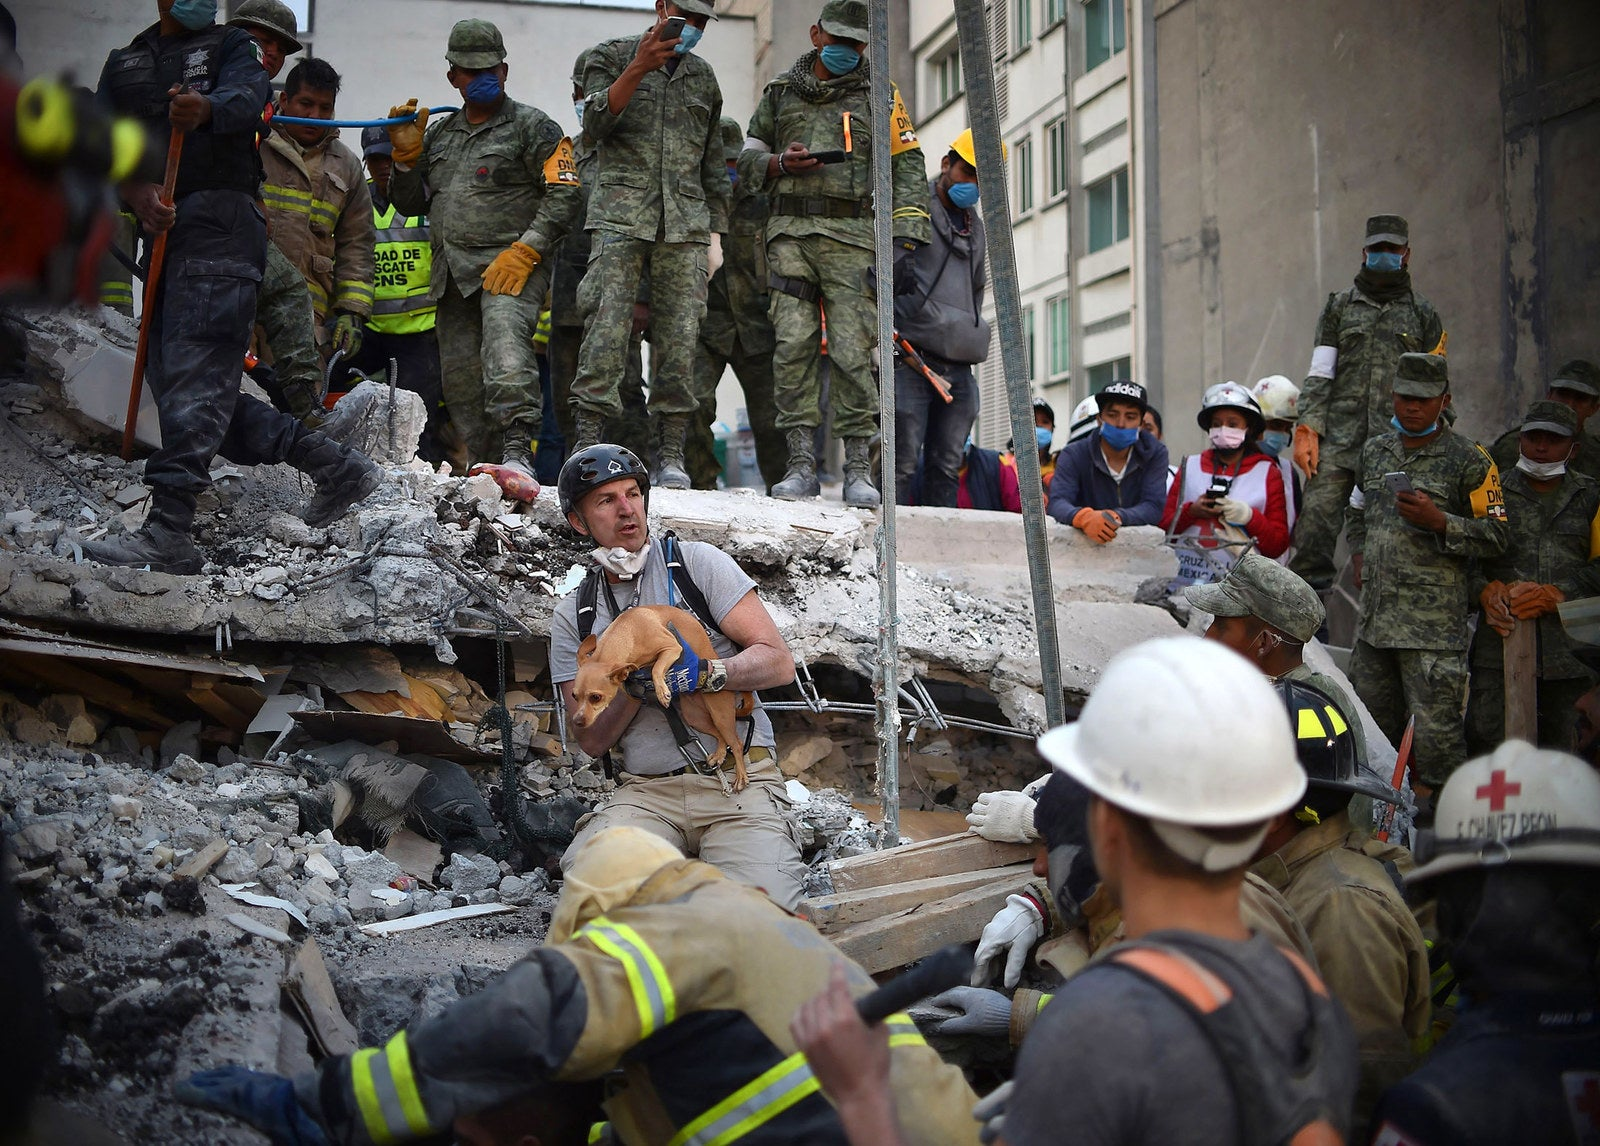 A rescuer pulls a dog out of the rubble during the search for survivors in Mexico City.